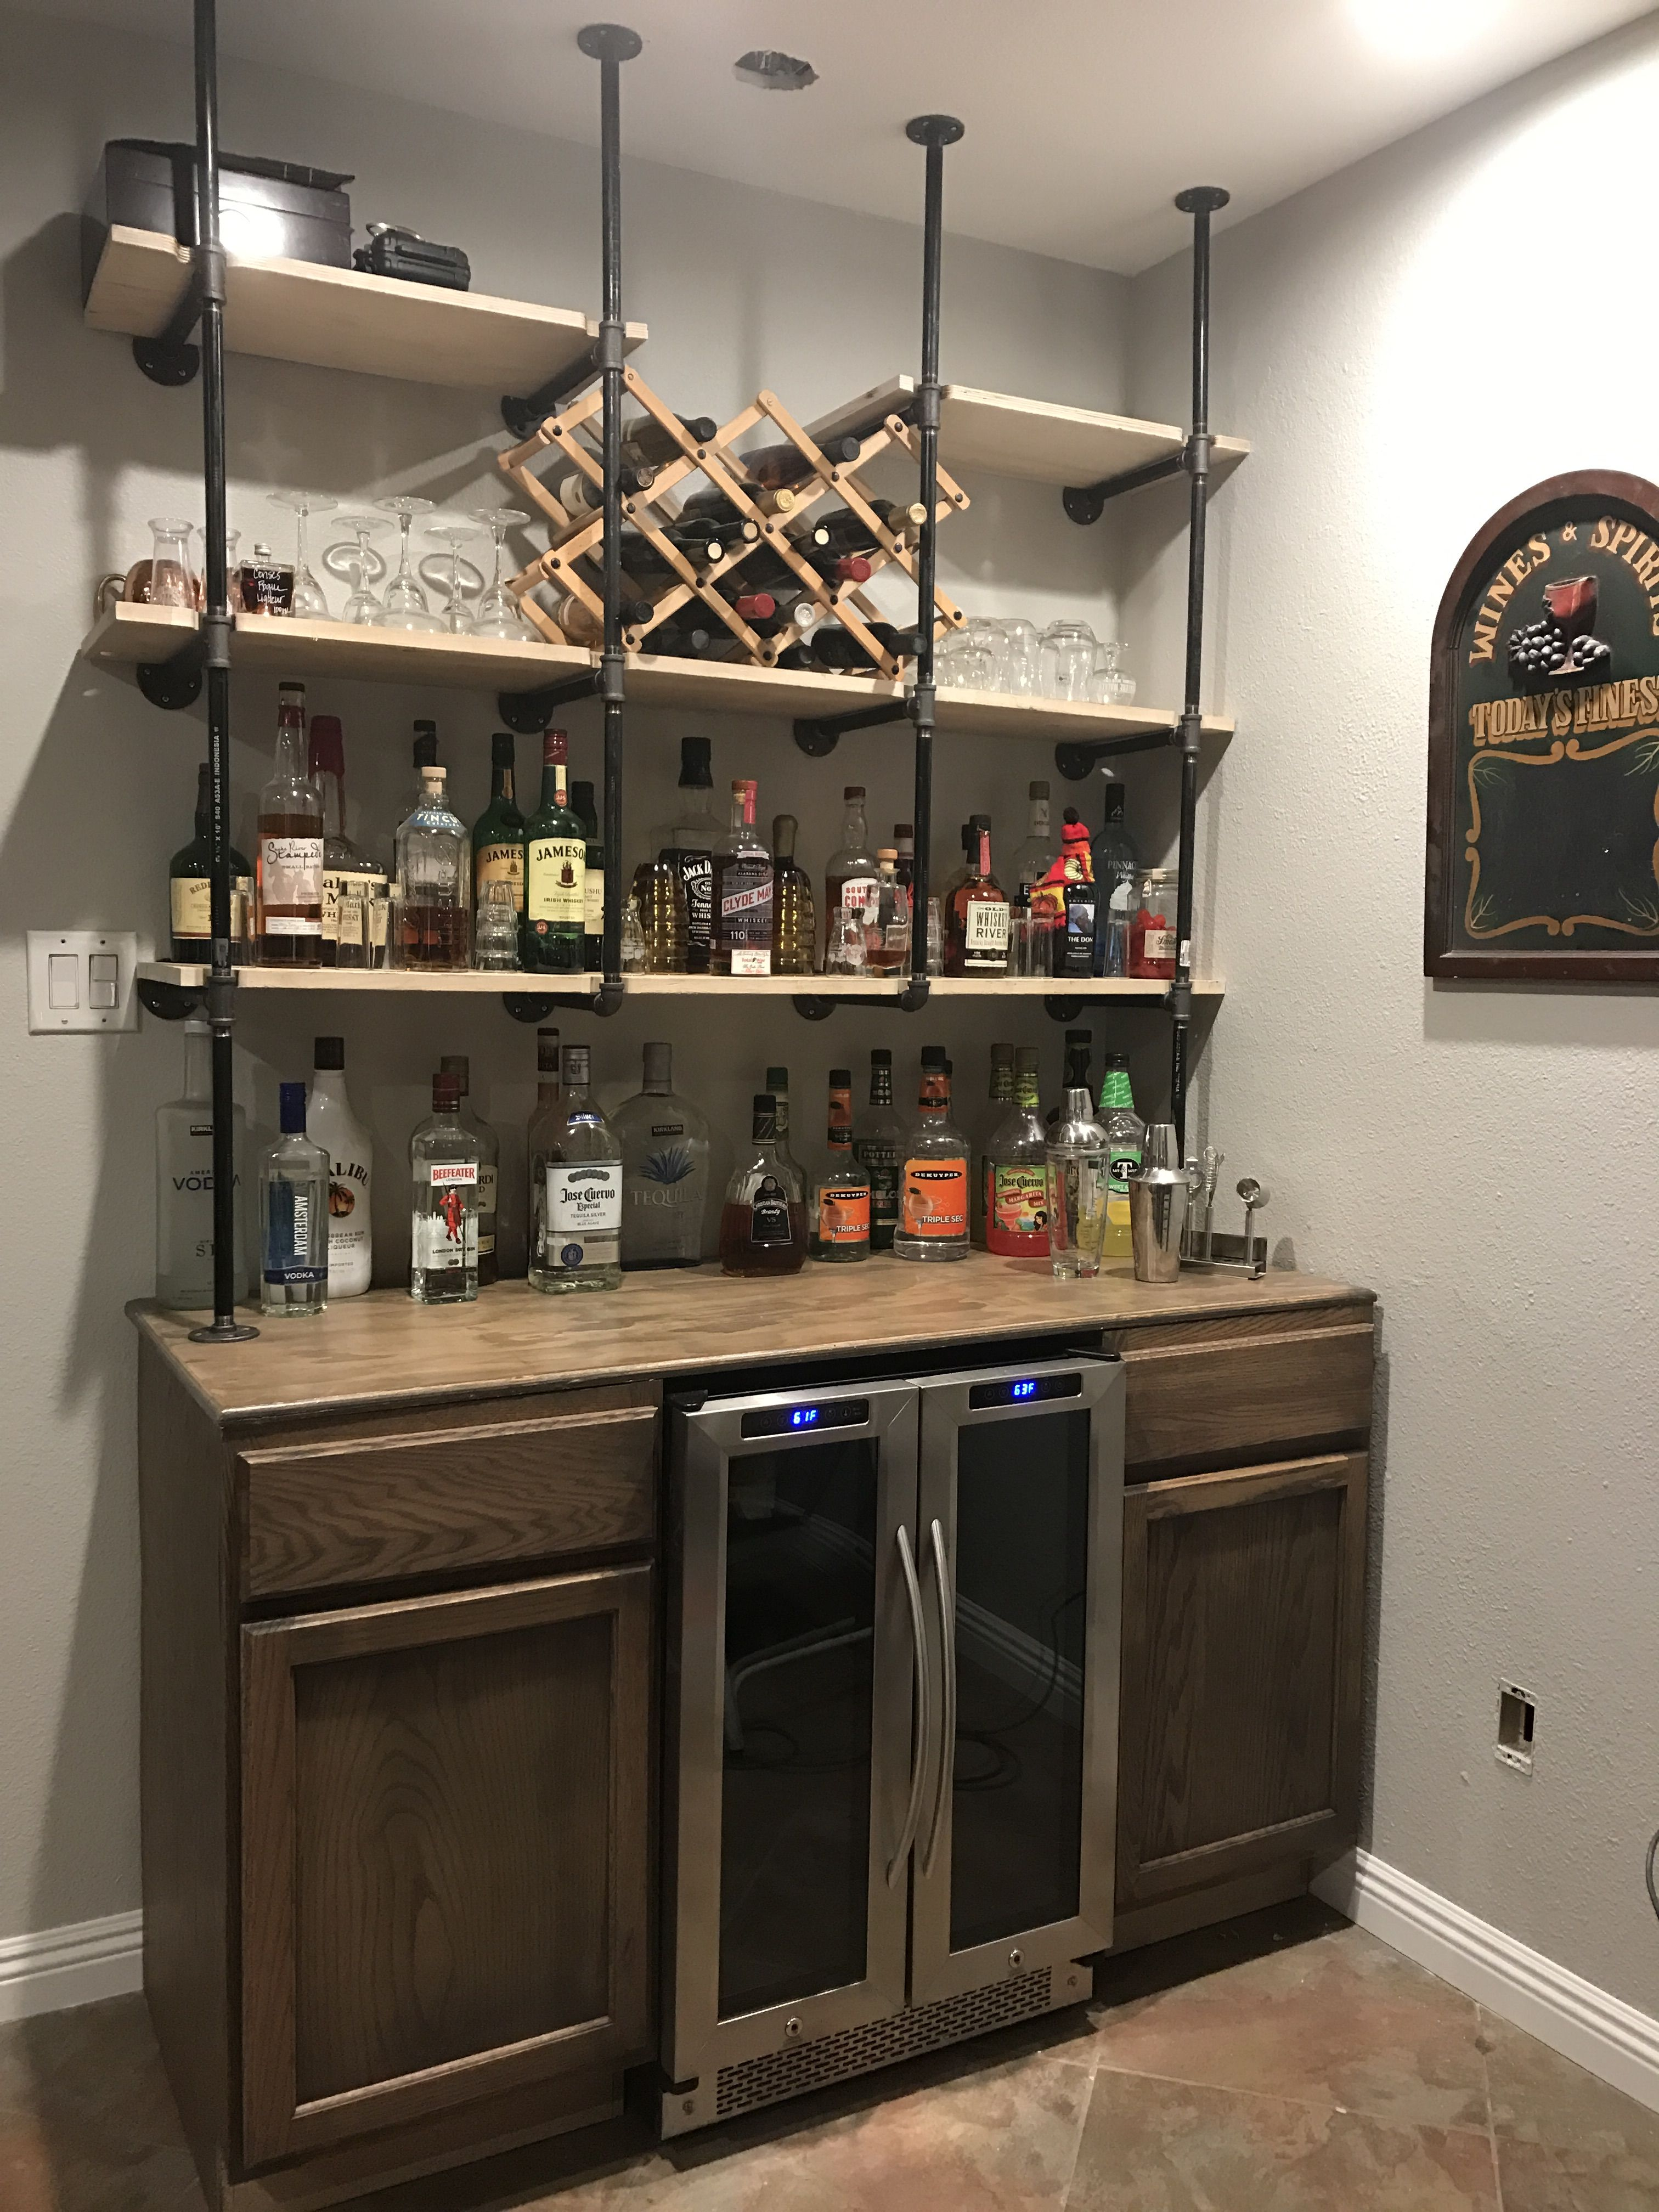 gas pipe shelves over rustic bar basement diy home floating the tight space bathroom organizer shelf rack ikea corner storage unit foot small decor ideas kitchen cupboard glass